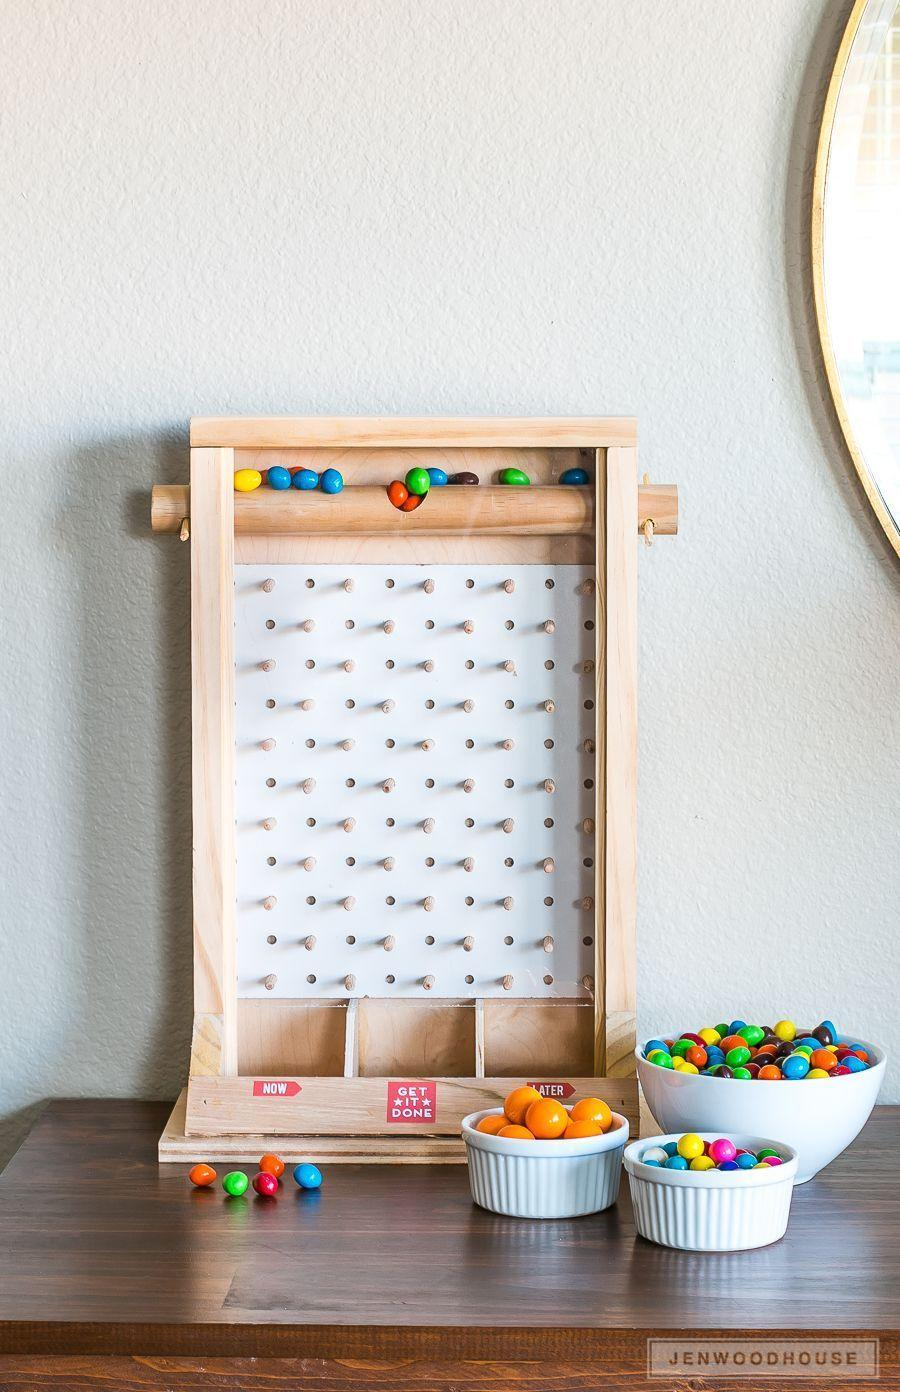 """<p>Know someone with a serious sweet tooth? Let them get their fix with this sophisticated candy dispenser. (We suggest including a selection of the recipient's favorite candies to keep things feeling truly personal.)</p><p><strong>Get the tutorial at <a href=""""https://jenwoodhouse.com/diy-candy-dispenser/"""" rel=""""nofollow noopener"""" target=""""_blank"""" data-ylk=""""slk:The House of Wood"""" class=""""link rapid-noclick-resp"""">The House of Wood</a>.</strong></p><p><a class=""""link rapid-noclick-resp"""" href=""""https://www.amazon.com/Dubble-Bubble-small-gum-balls-Pounds/dp/B018FKARYK?tag=syn-yahoo-20&ascsubtag=%5Bartid%7C10050.g.645%5Bsrc%7Cyahoo-us"""" rel=""""nofollow noopener"""" target=""""_blank"""" data-ylk=""""slk:SHOP GUMBALLS"""">SHOP GUMBALLS</a></p>"""